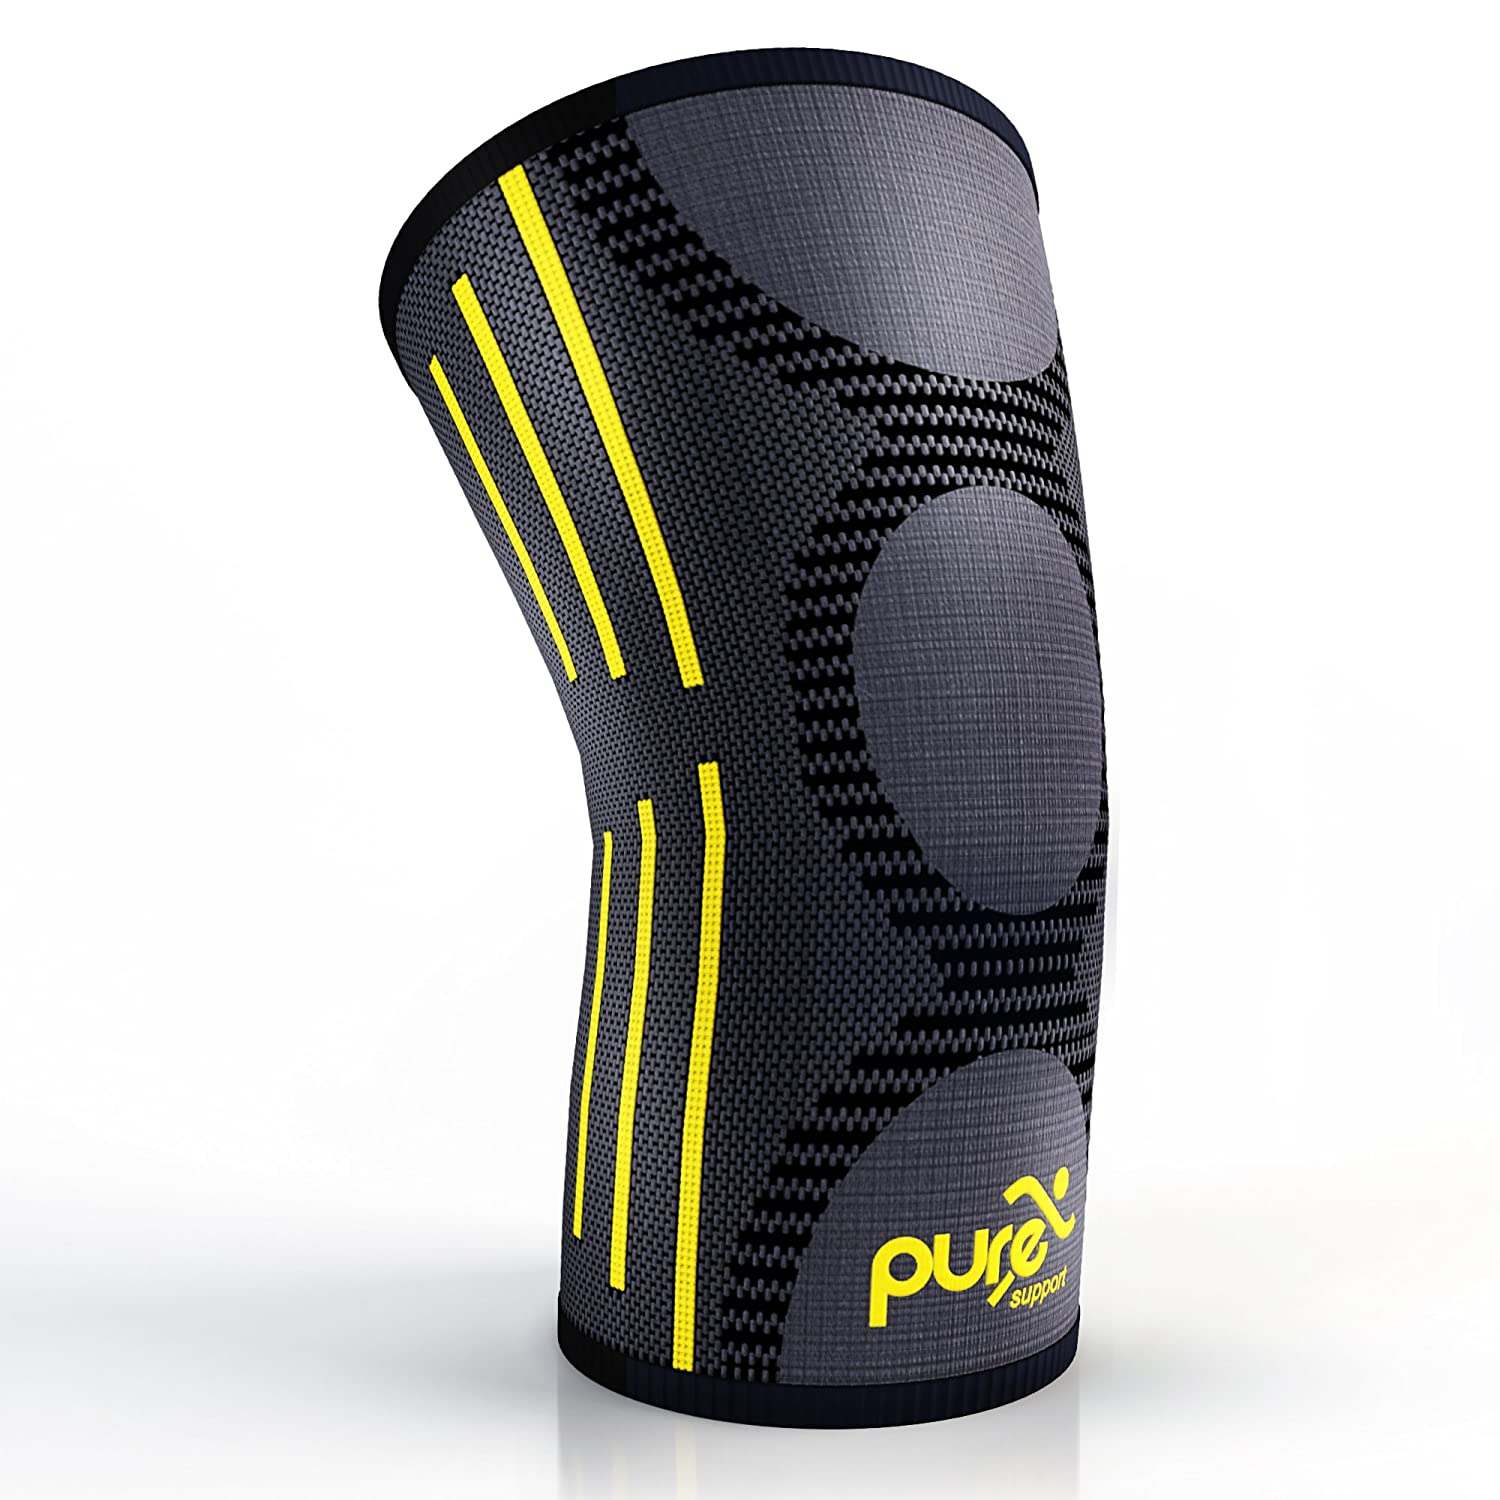 Pure Support Knee Brace Sleeve with Best Patella Compression for Meniscus Tear & Arthritis - Ideal for Running, Sports and Daily Activities for Women, Men and Kids … Men and Kids …